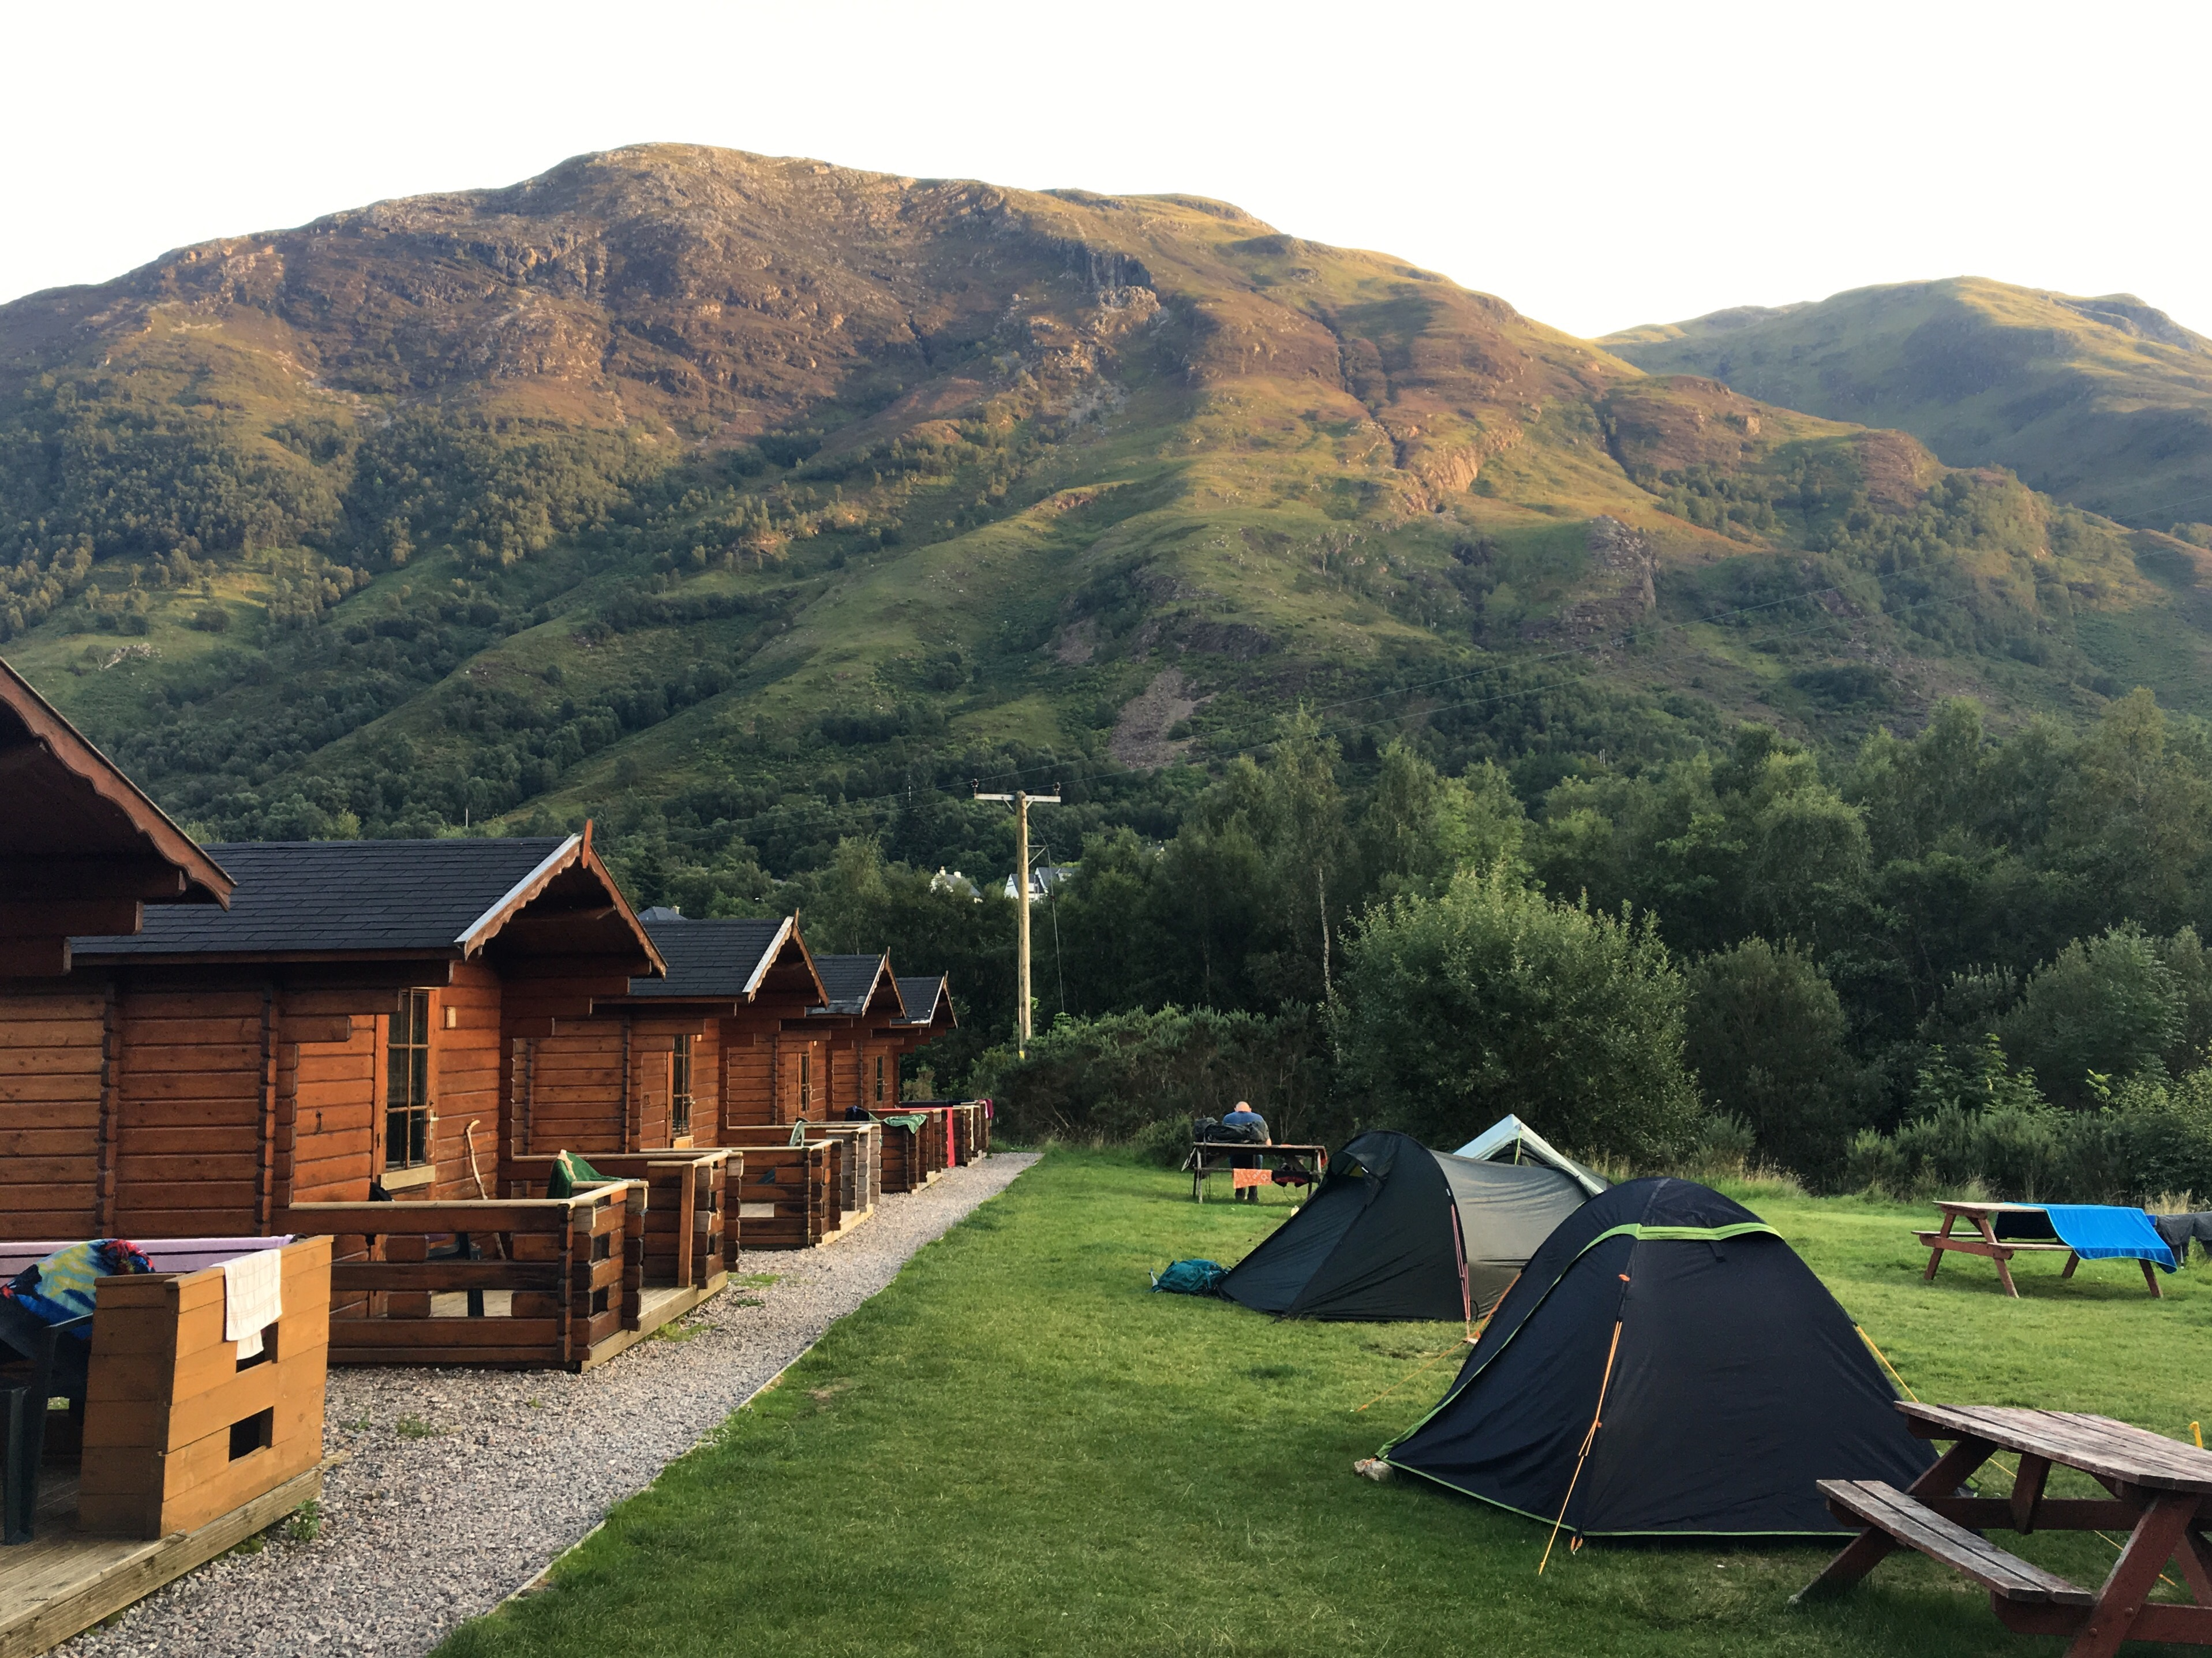 Campsite at MacDonald's Hotel and Cabins, Kinlochleven, Scotland